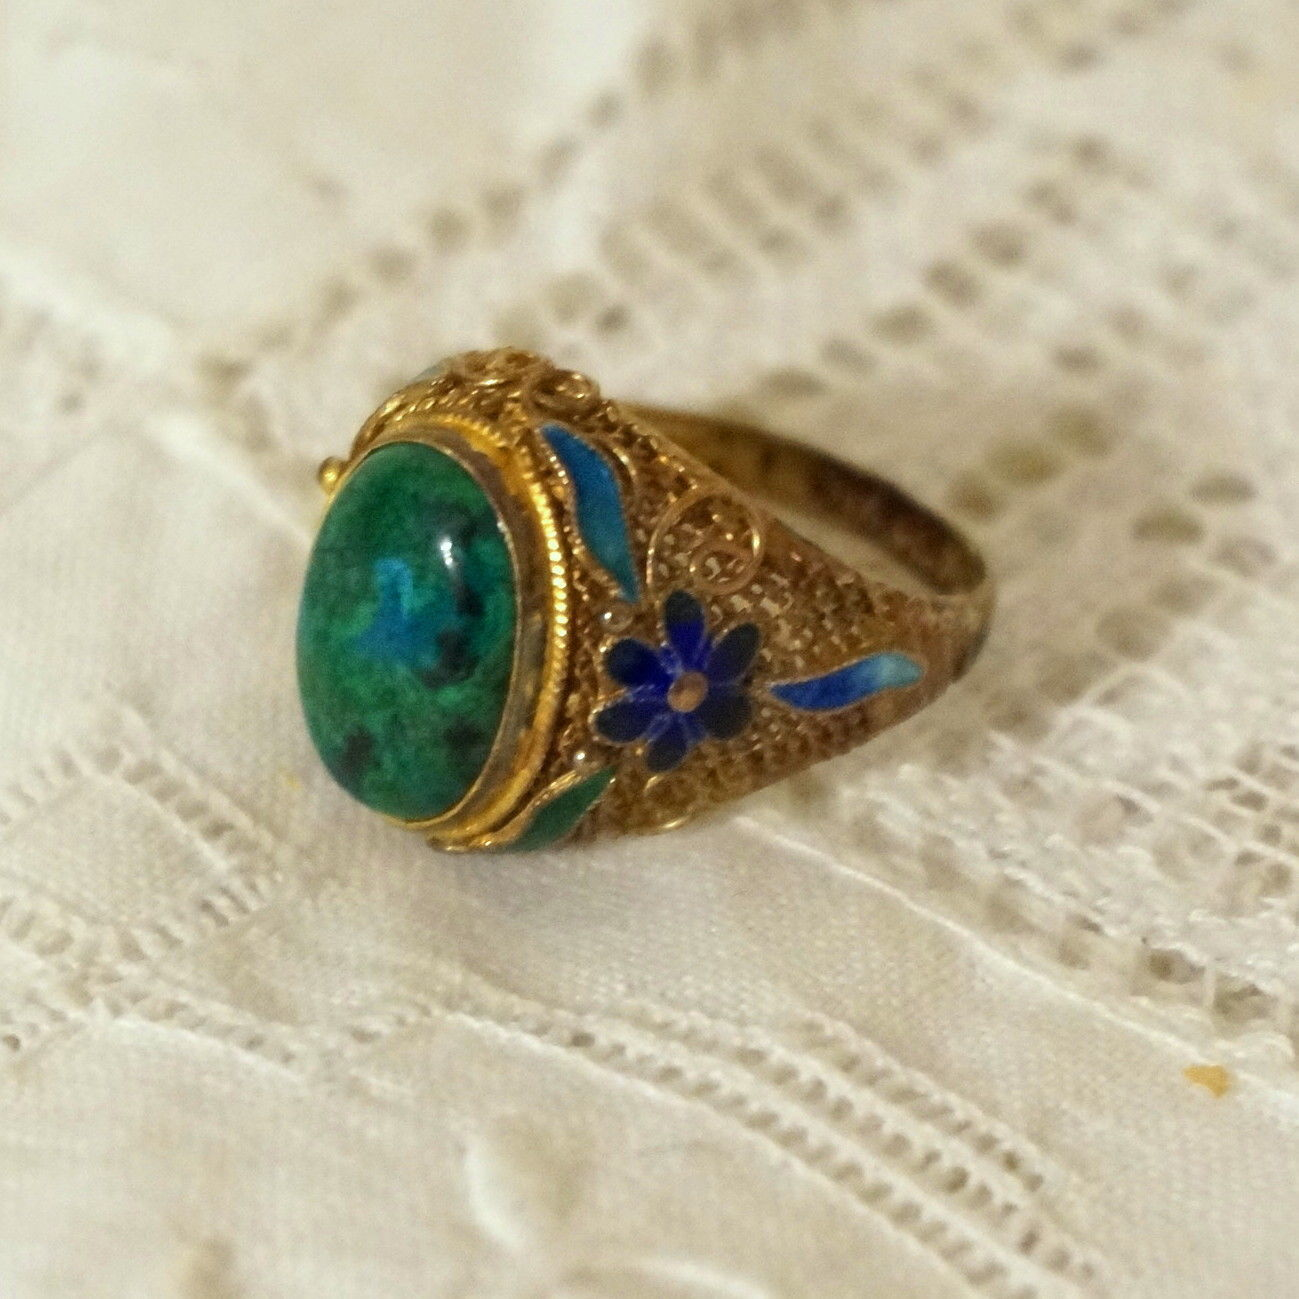 Antique Vintage Chinese Enamel Gilt Silver Filigree Chrysocolla Cabochon Ring 8